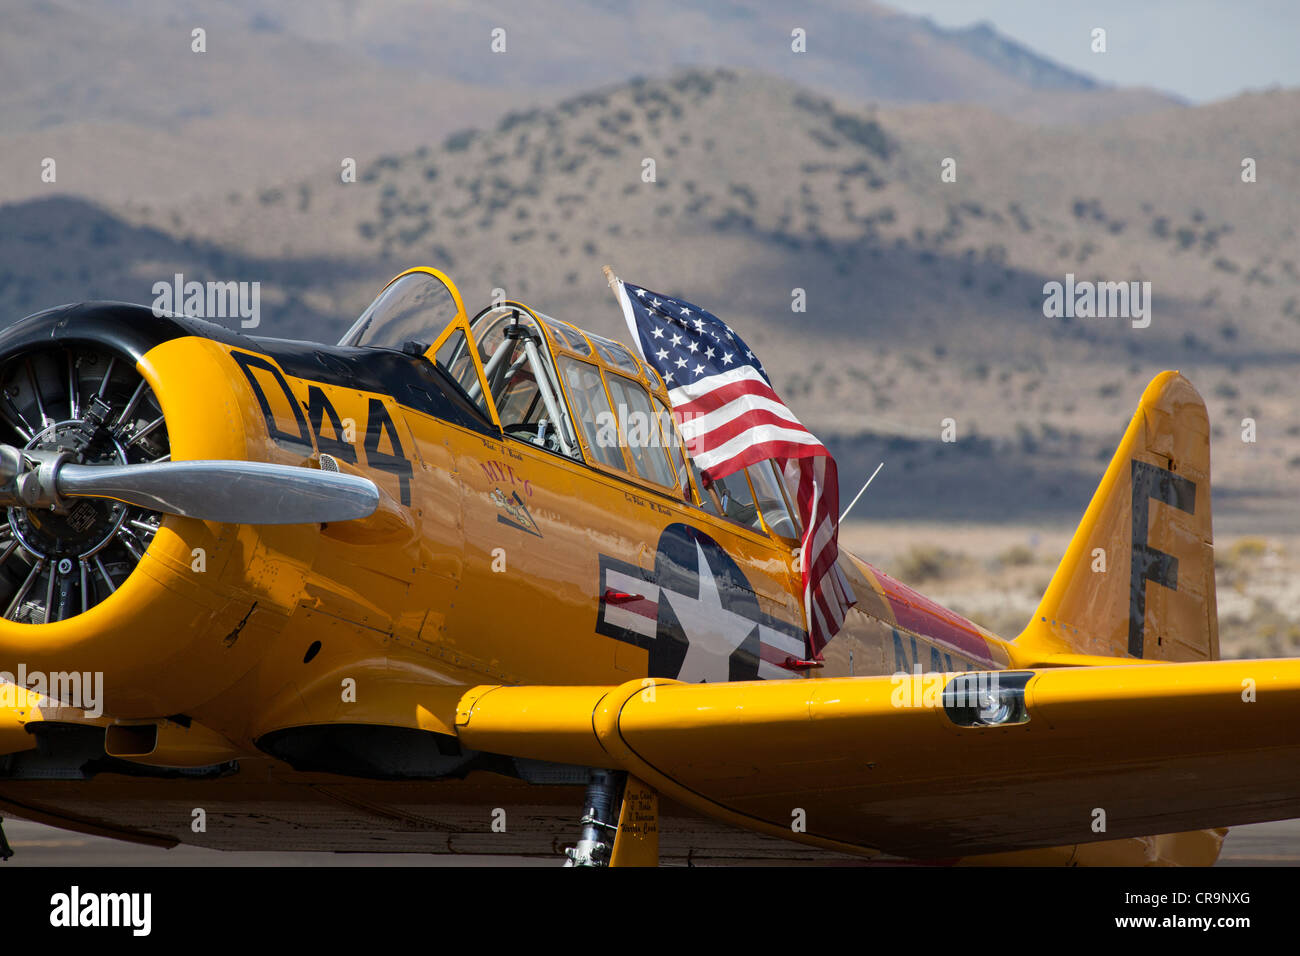 T-6 Texan at the 2011 National Championship Air Races in Reno Nevada - Stock Image